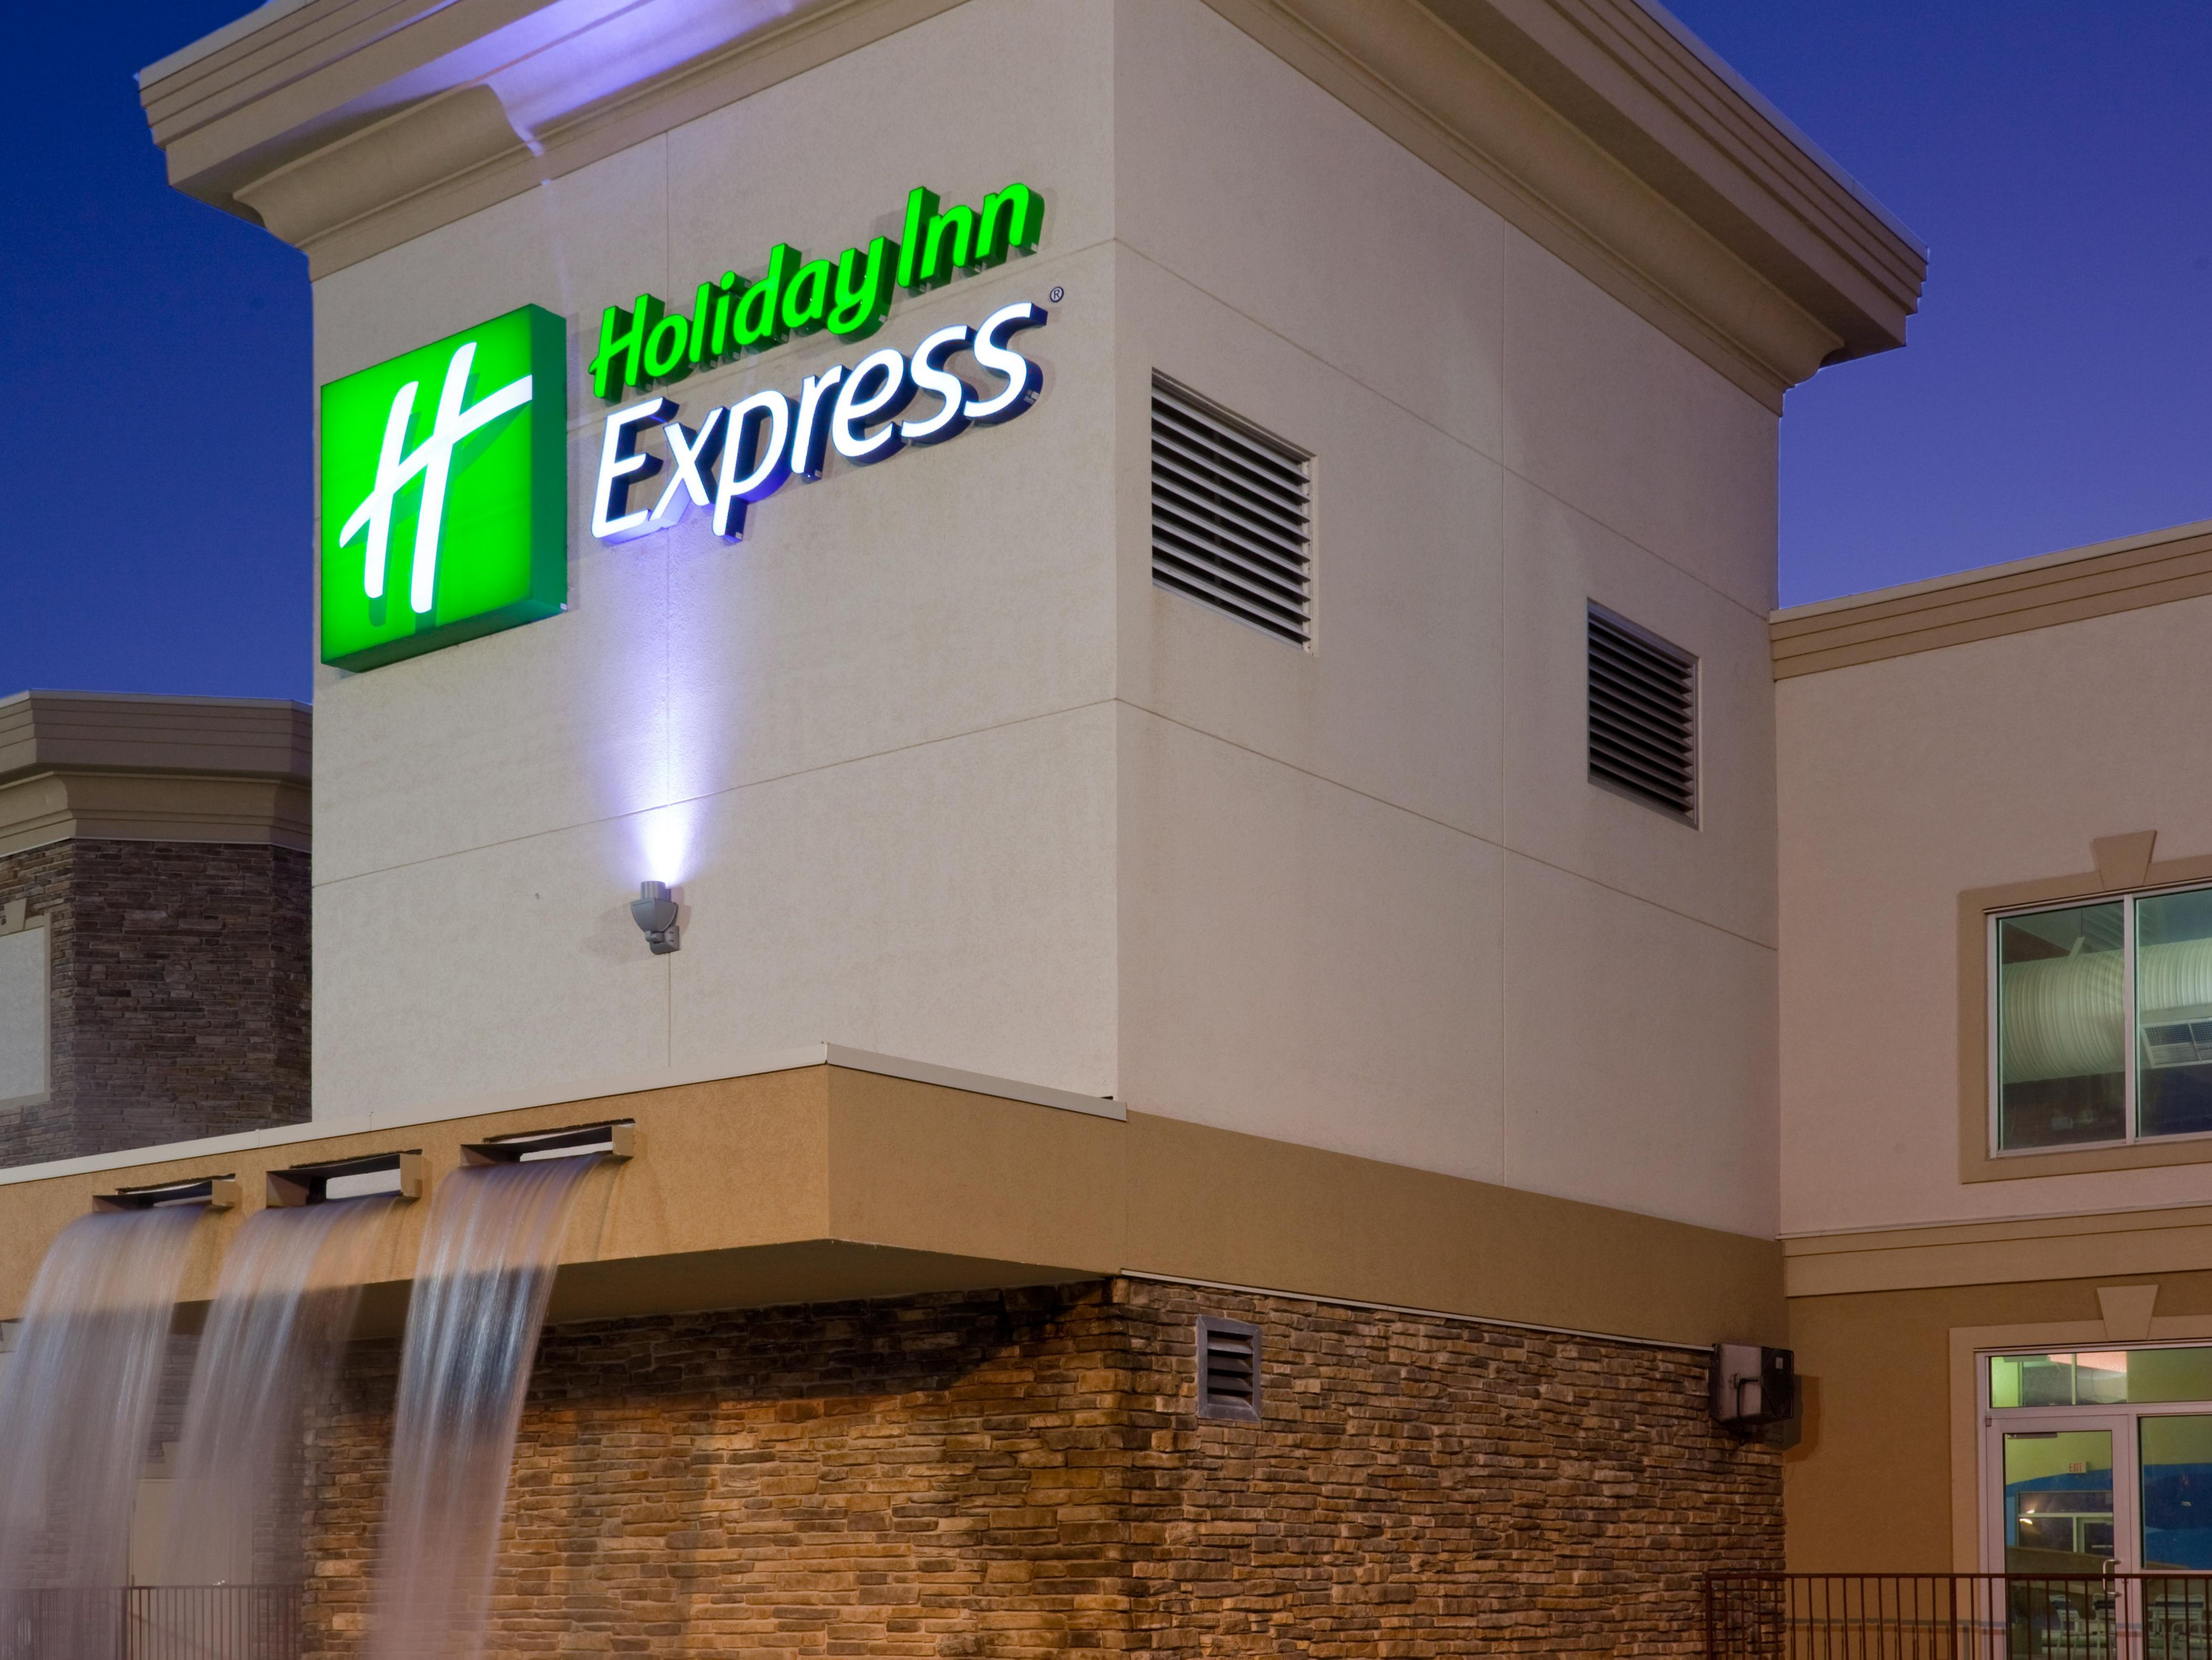 holiday suites comforter rhinelander prince express ihg ypask and hoteldetail en albert wi by hotel hotels us holidayinnexpress comfort inn